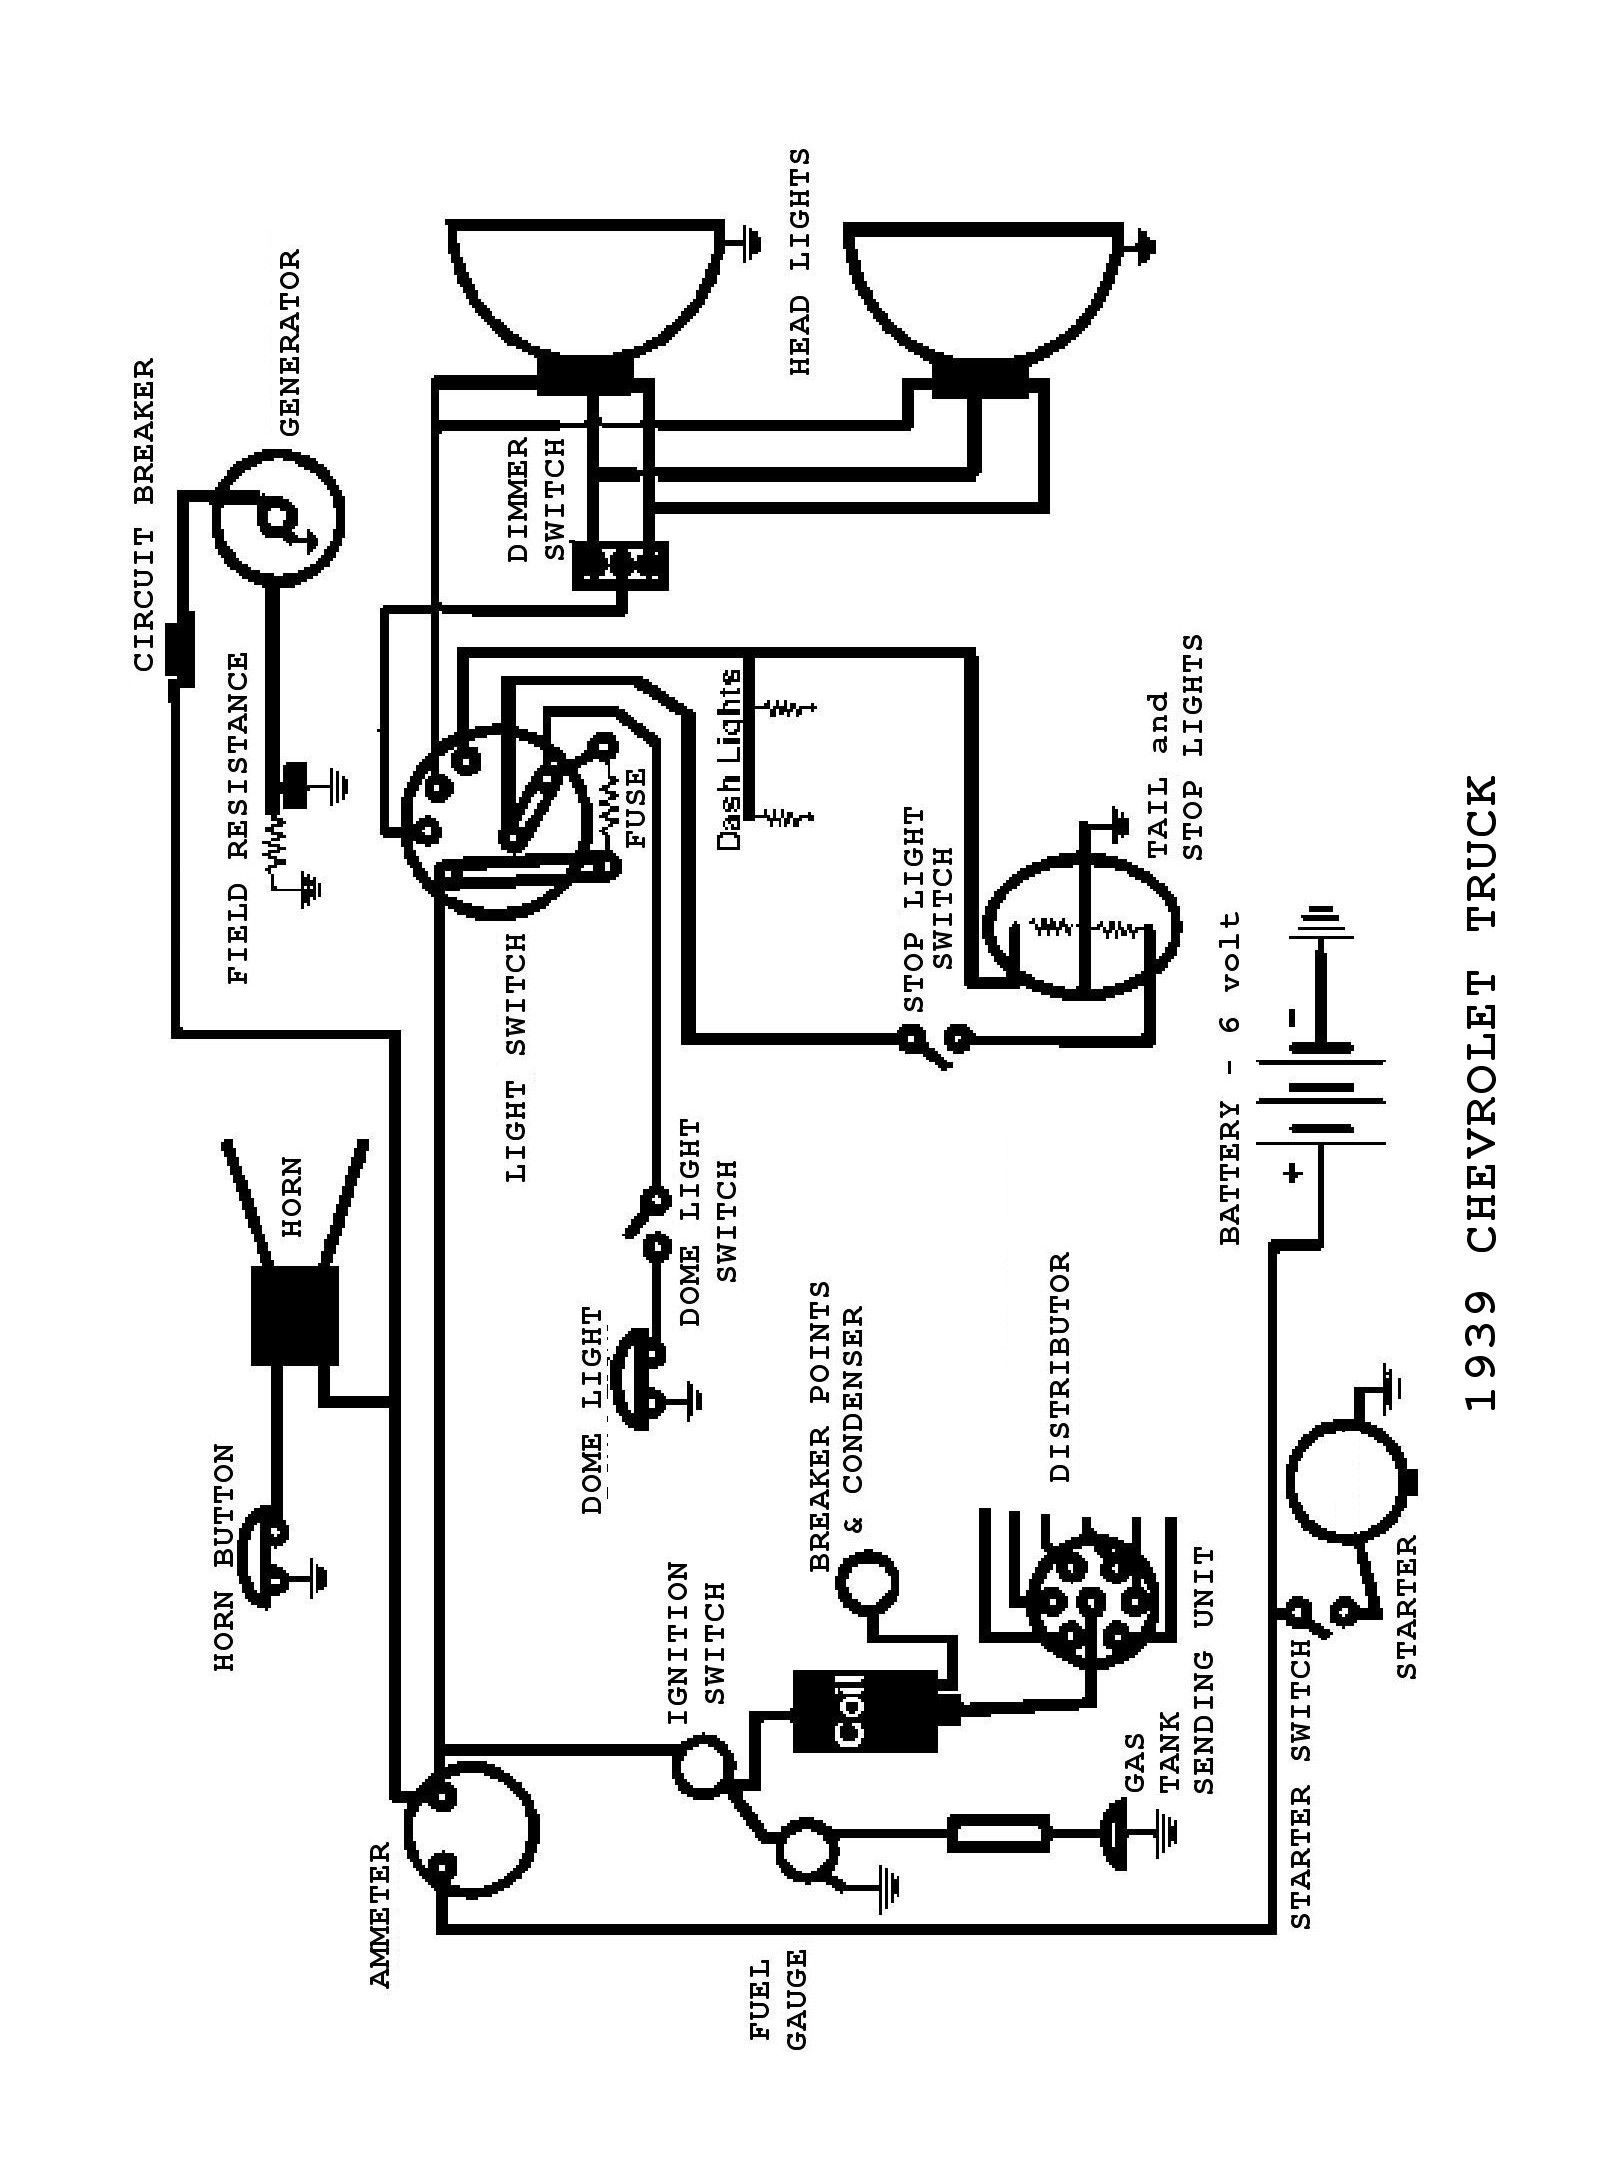 1949 ford truck wiring diagram 1949 circuit diagrams